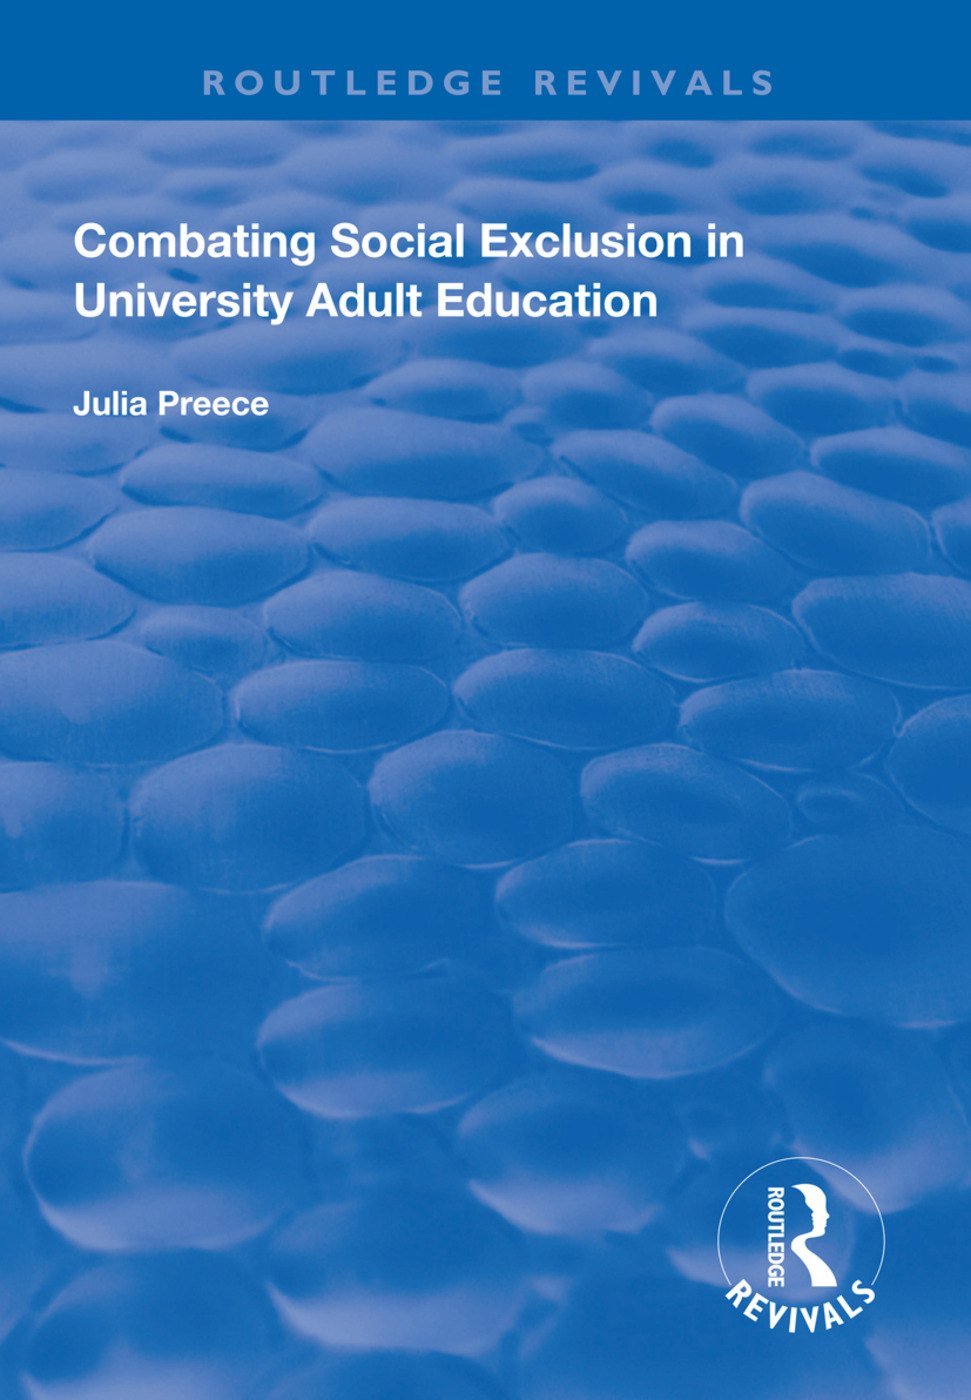 Combating Social Exclusion in University Adult Education